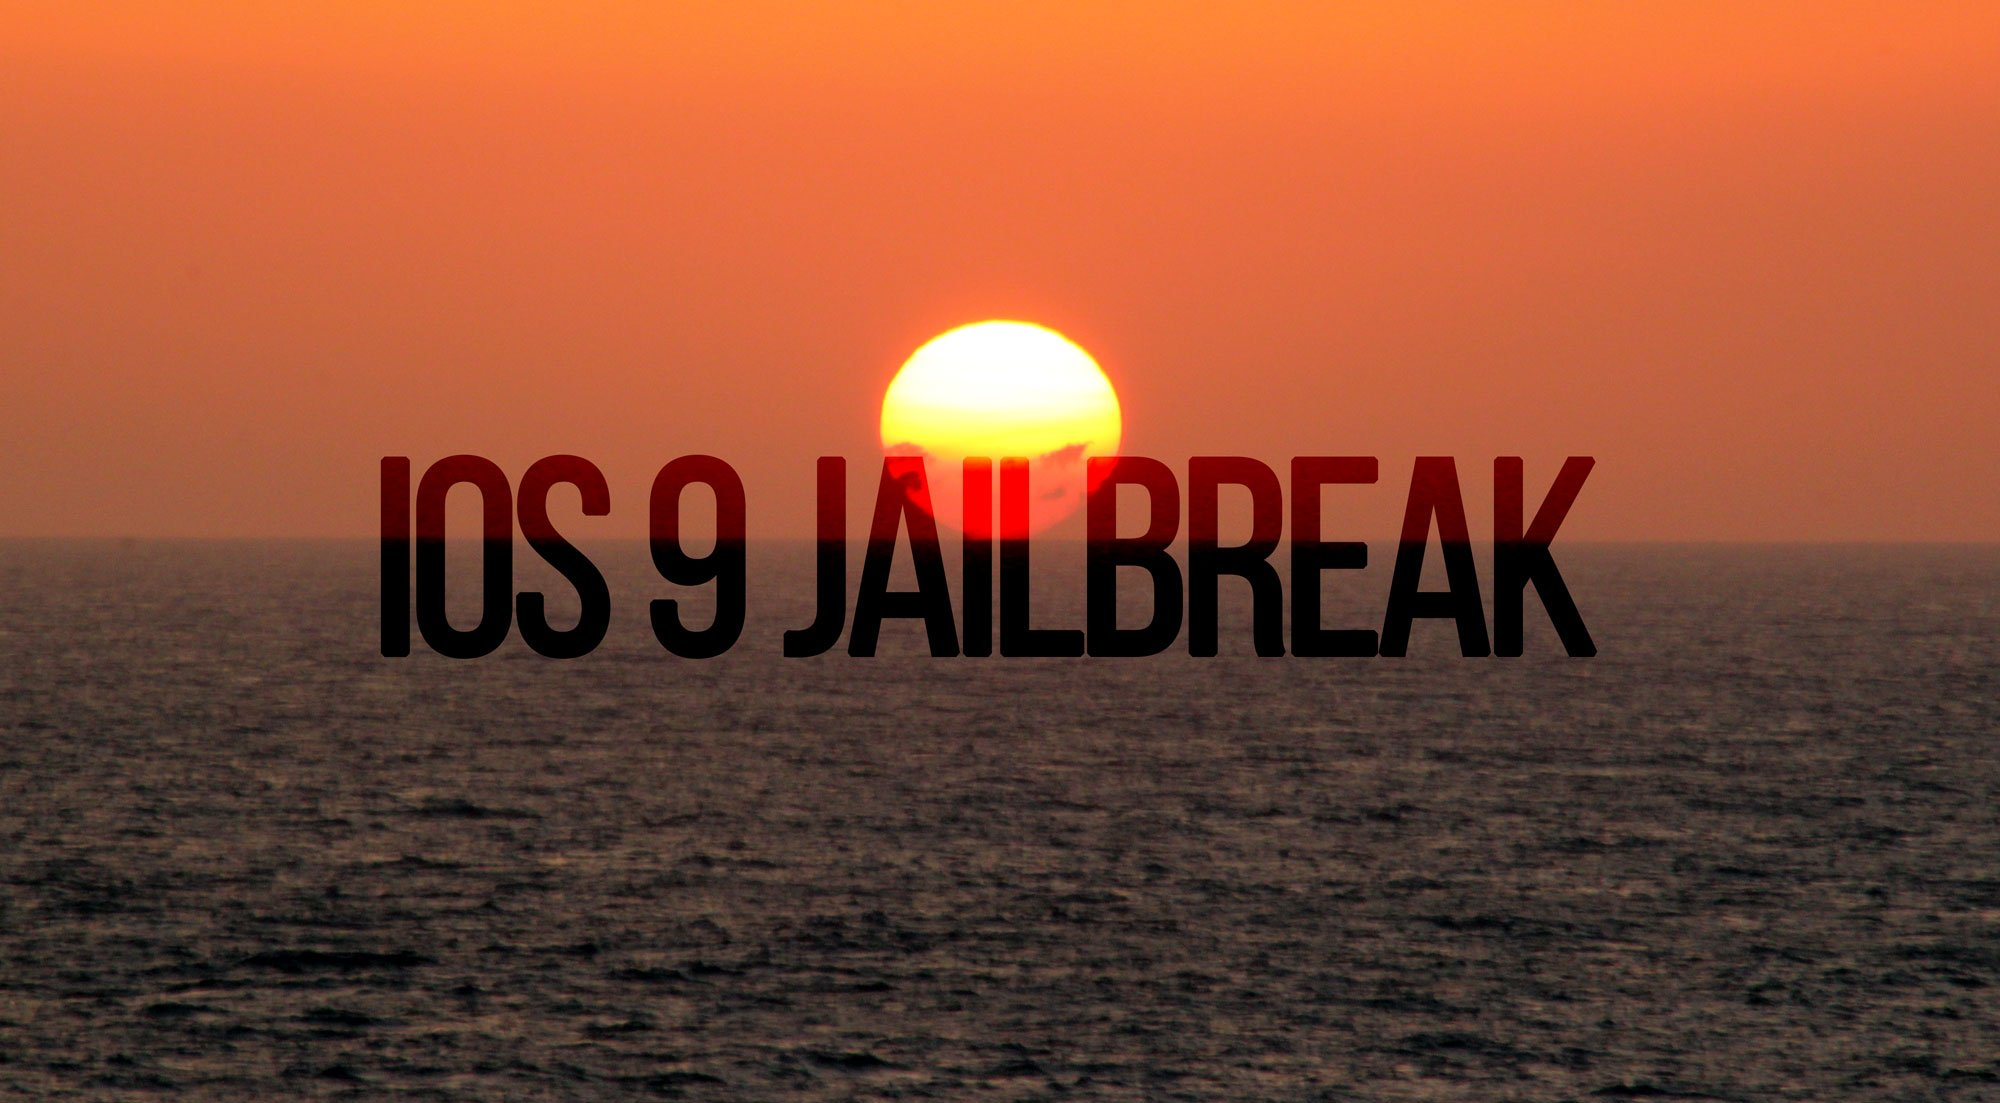 iOS 9 Jailbreak für iPhone 6s